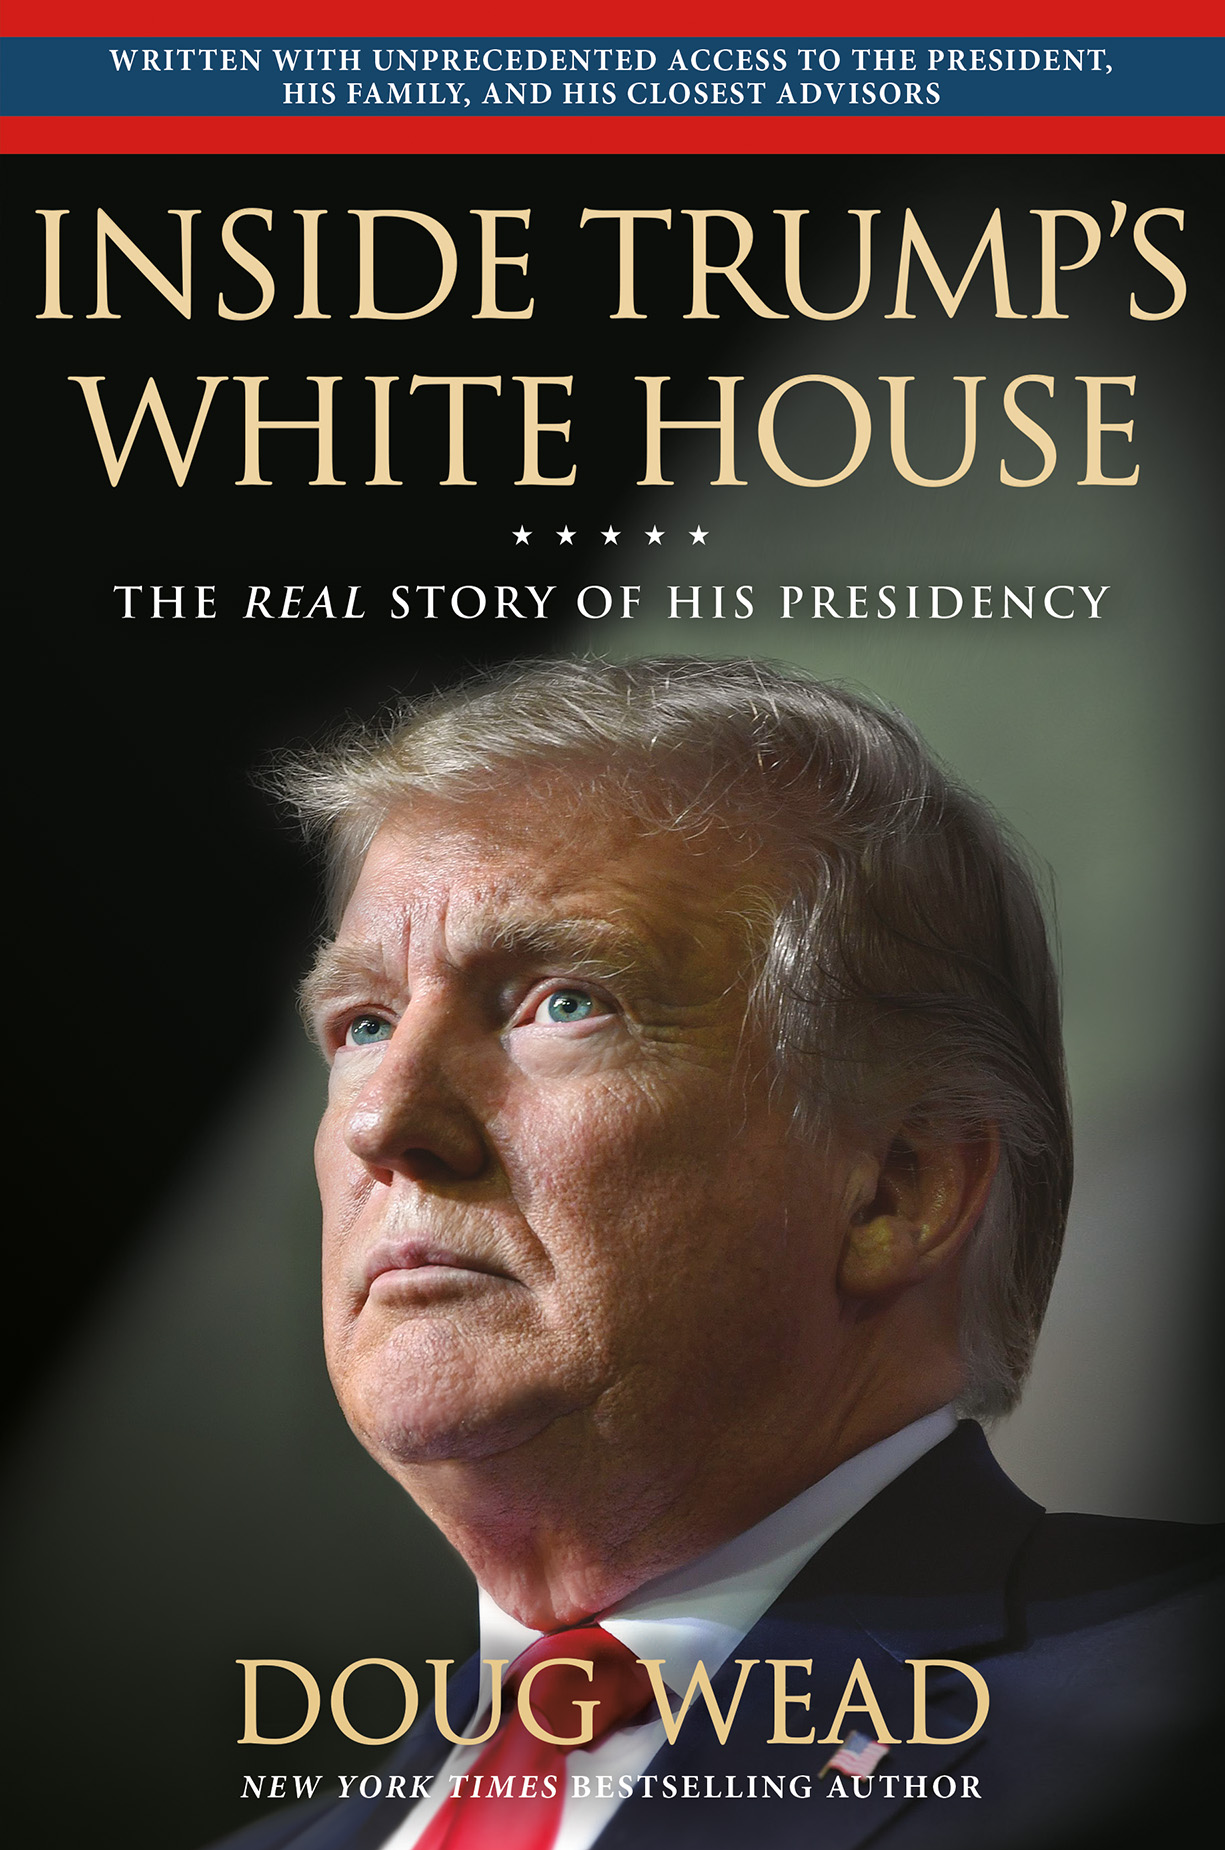 Historian Doug Wead's book launched later in November and includes exclusive interviews with Trump, his family and senior staffers. (Photo courtesy of Hachette Book Group)